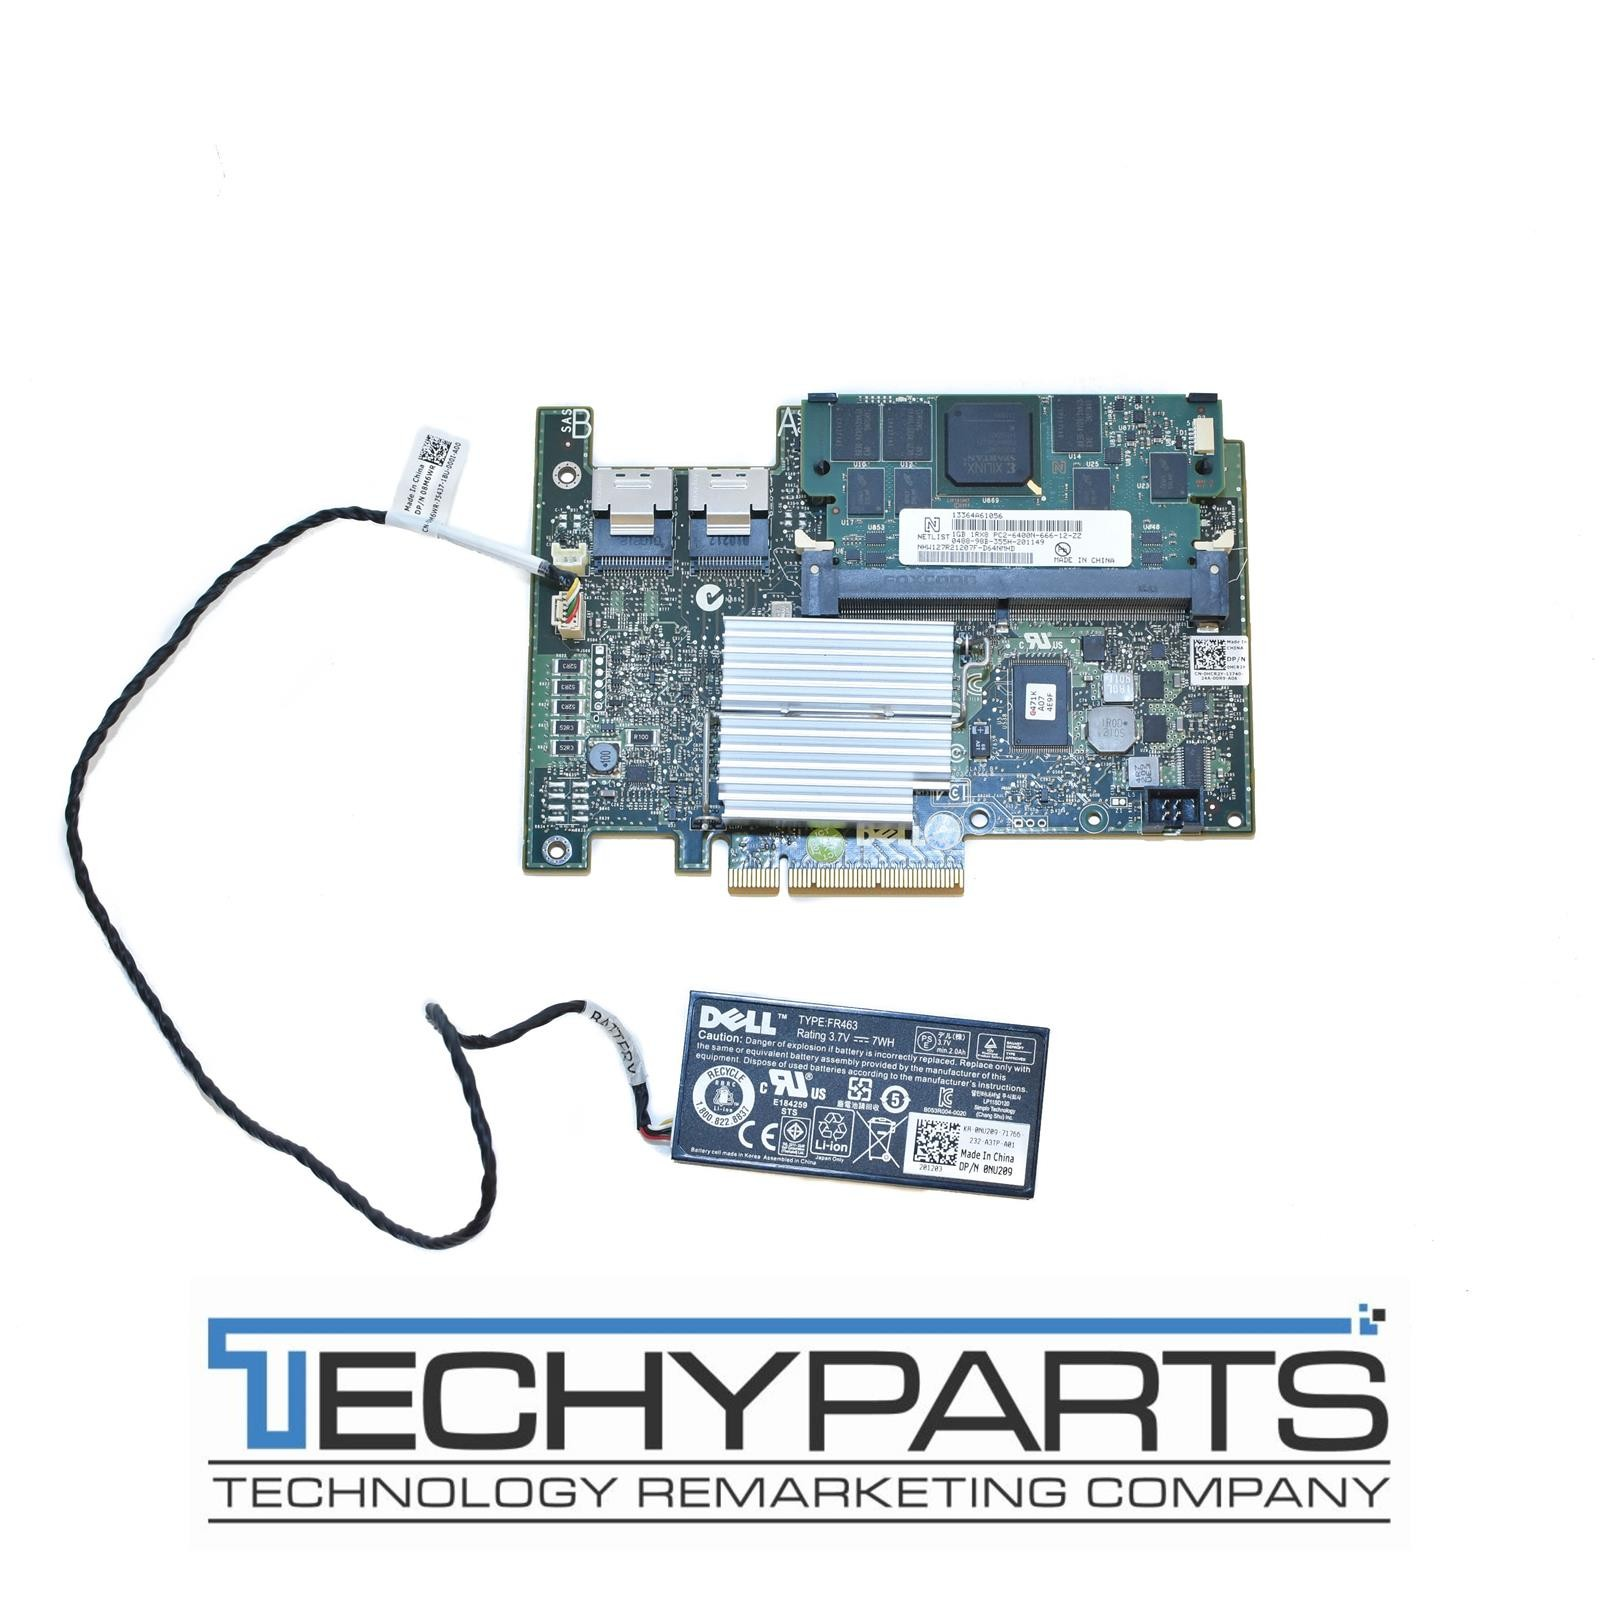 Wiring Diagram Sata Raid Card Cable Pinout Wire Diagrams Dell Hcr2y Perc H700 6gb S 1gb Nvd Sas Controller W